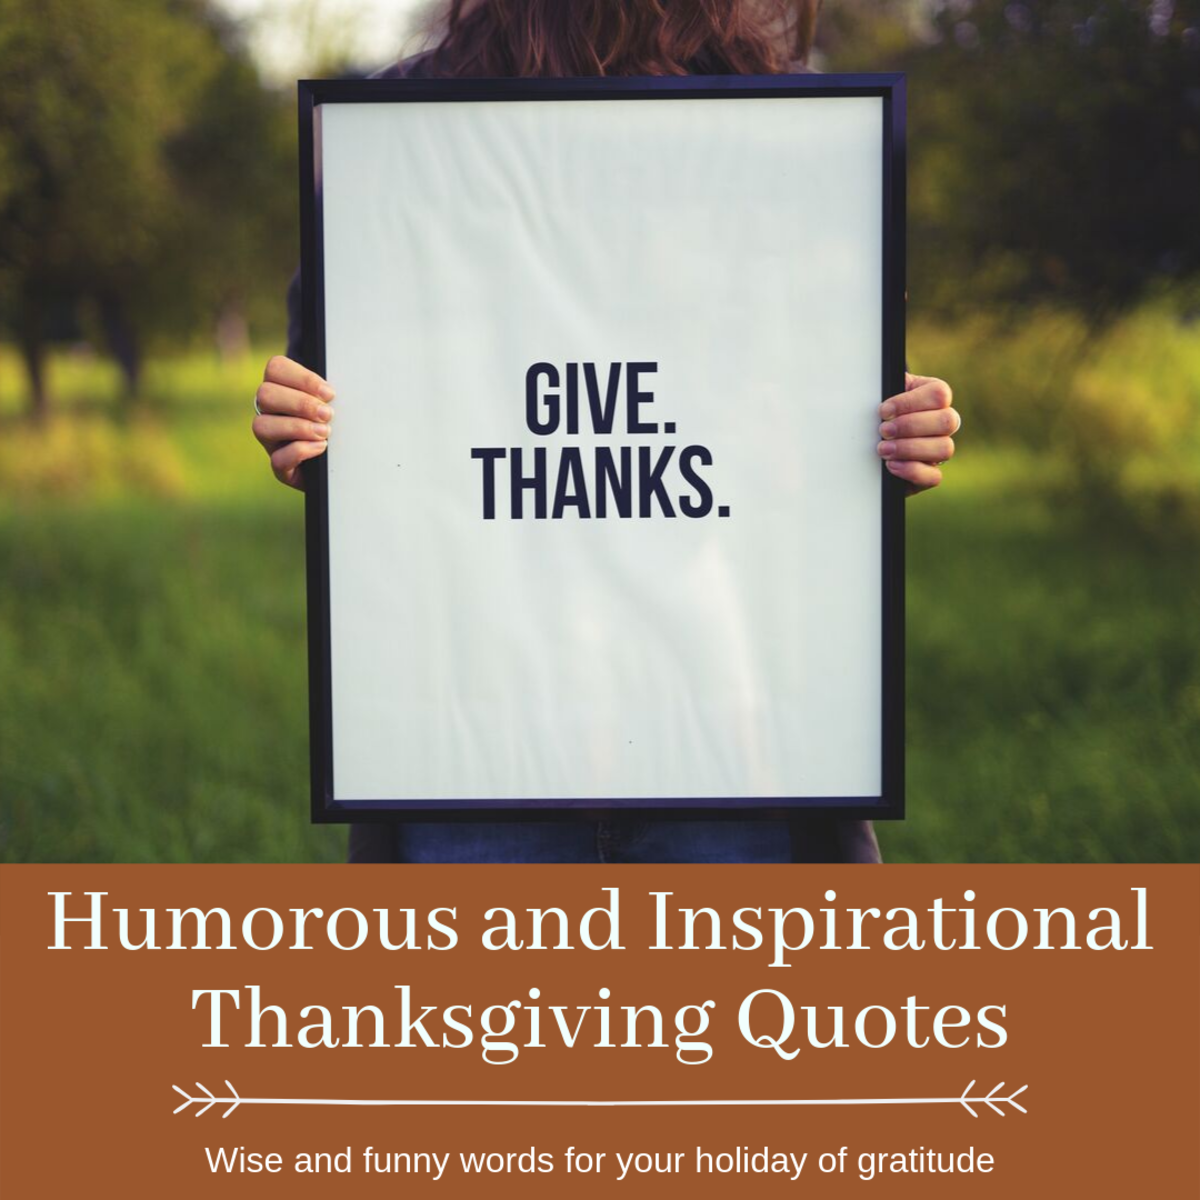 Funny and Inspirational Thanksgiving Quotes